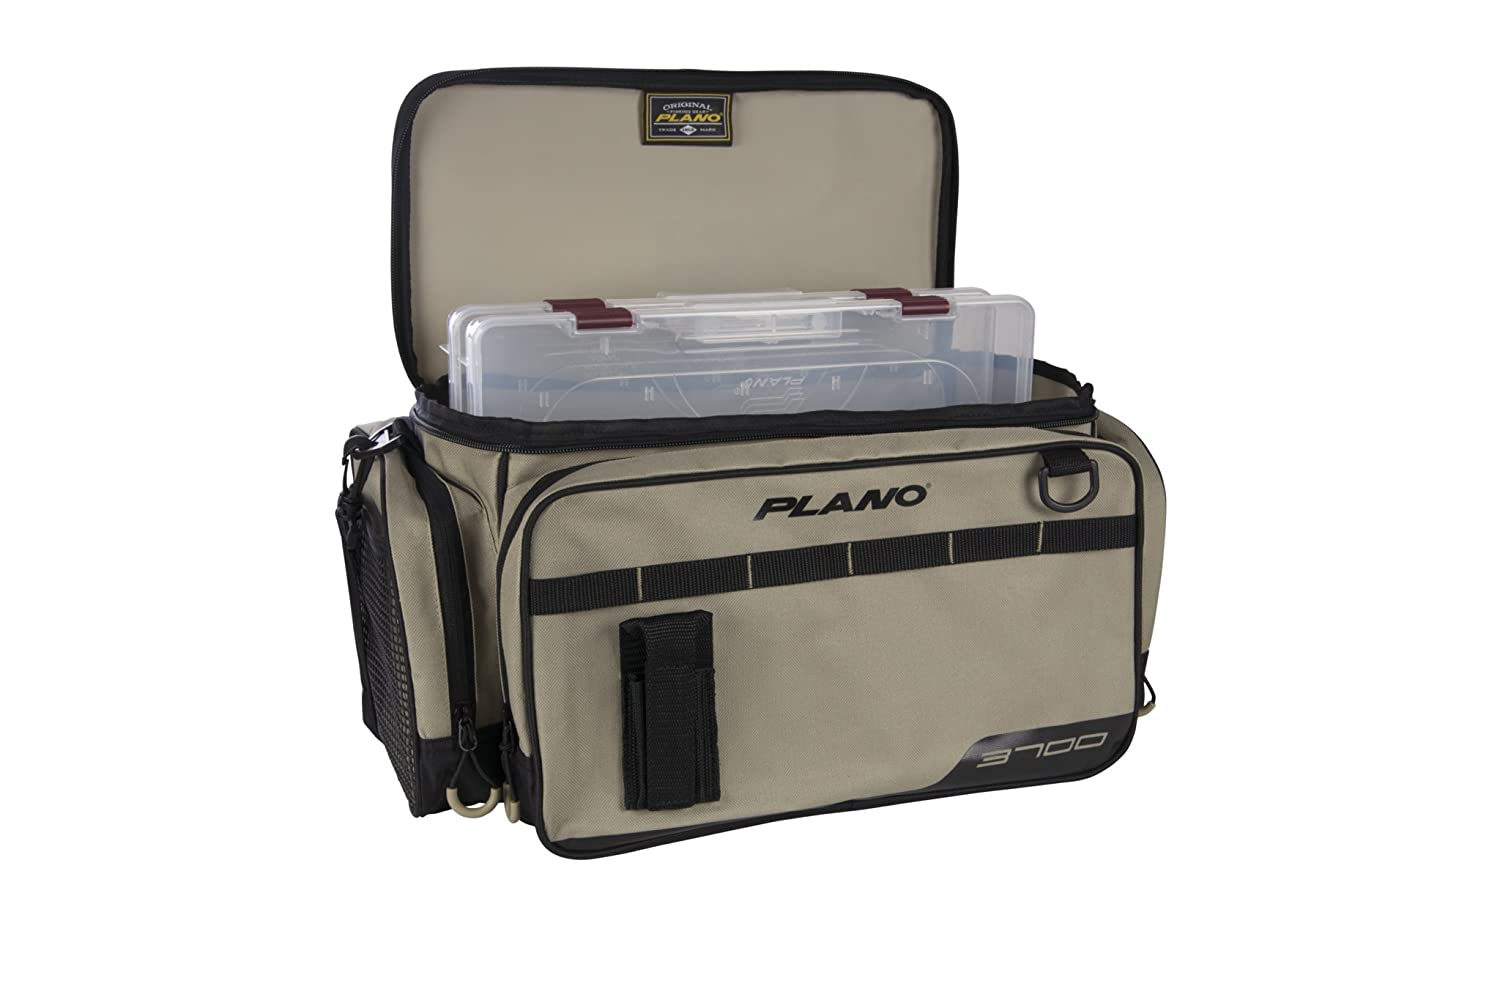 Plano PLAB37111 Weekend Series 3700 Size Tackle Case, Tan PLANO MOLDING COMPANY